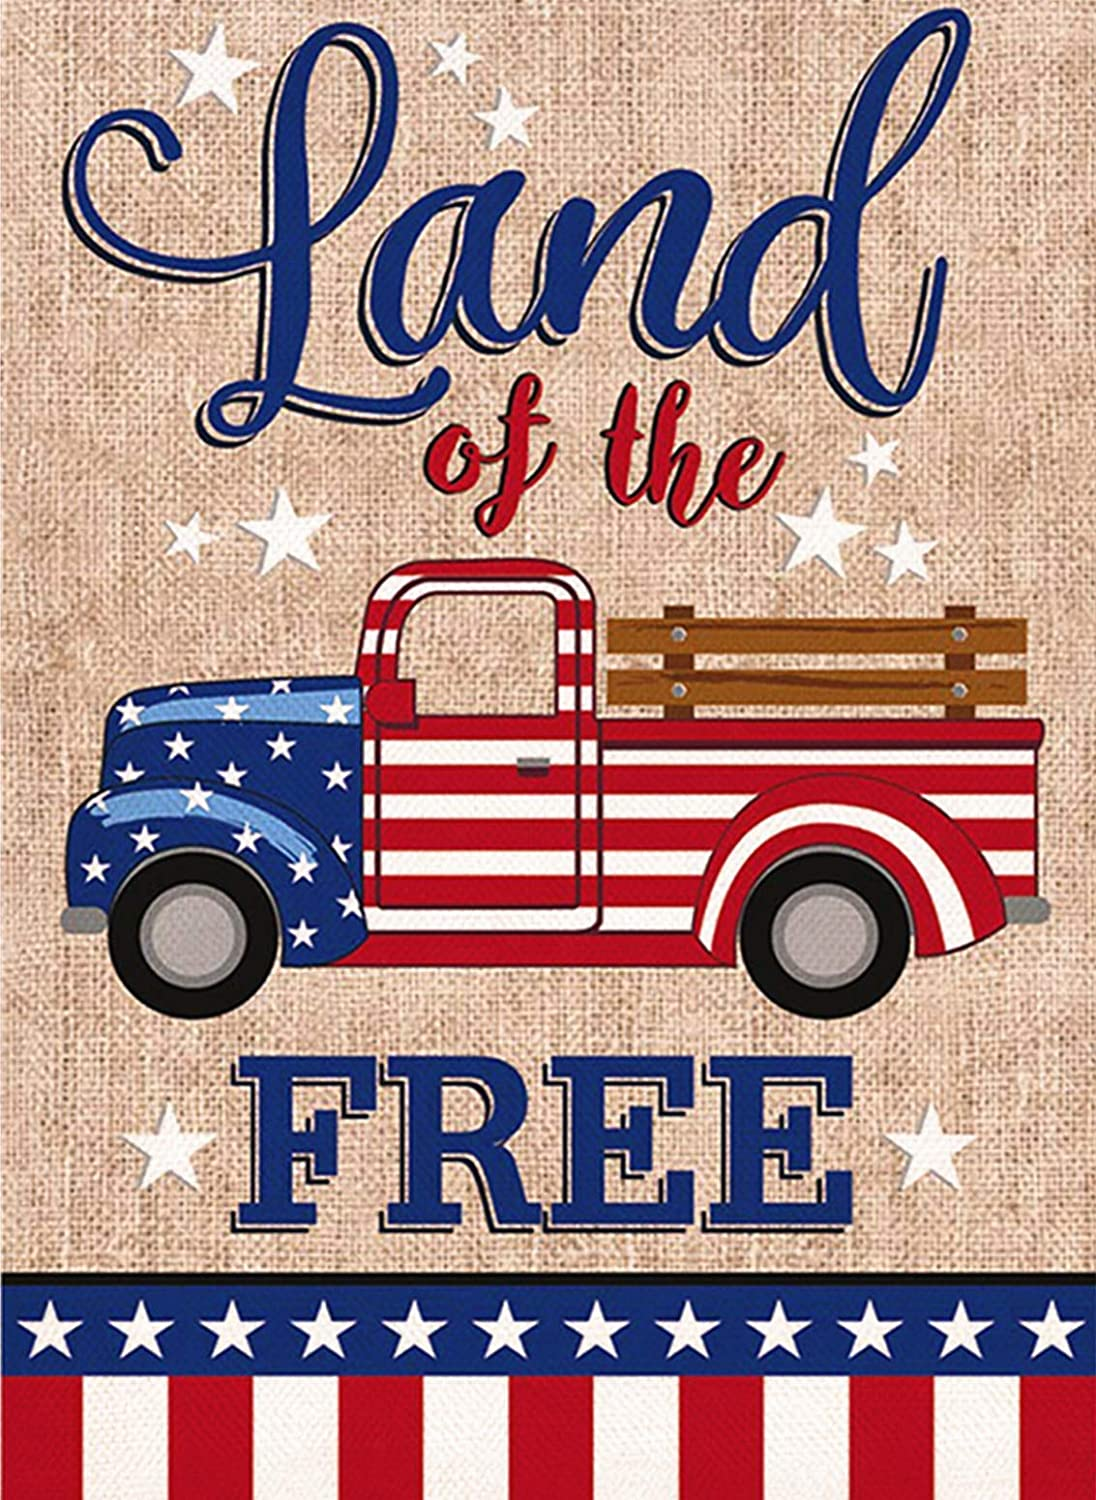 Covido July 4th Garden Flag Land of Free, Home Decorative American Patriotic House Yard Welcome Decor Truck Sign, Spring Summer Outside Decoration USA Seasonal Outdoor Small Flag Double Sided 12 x 18